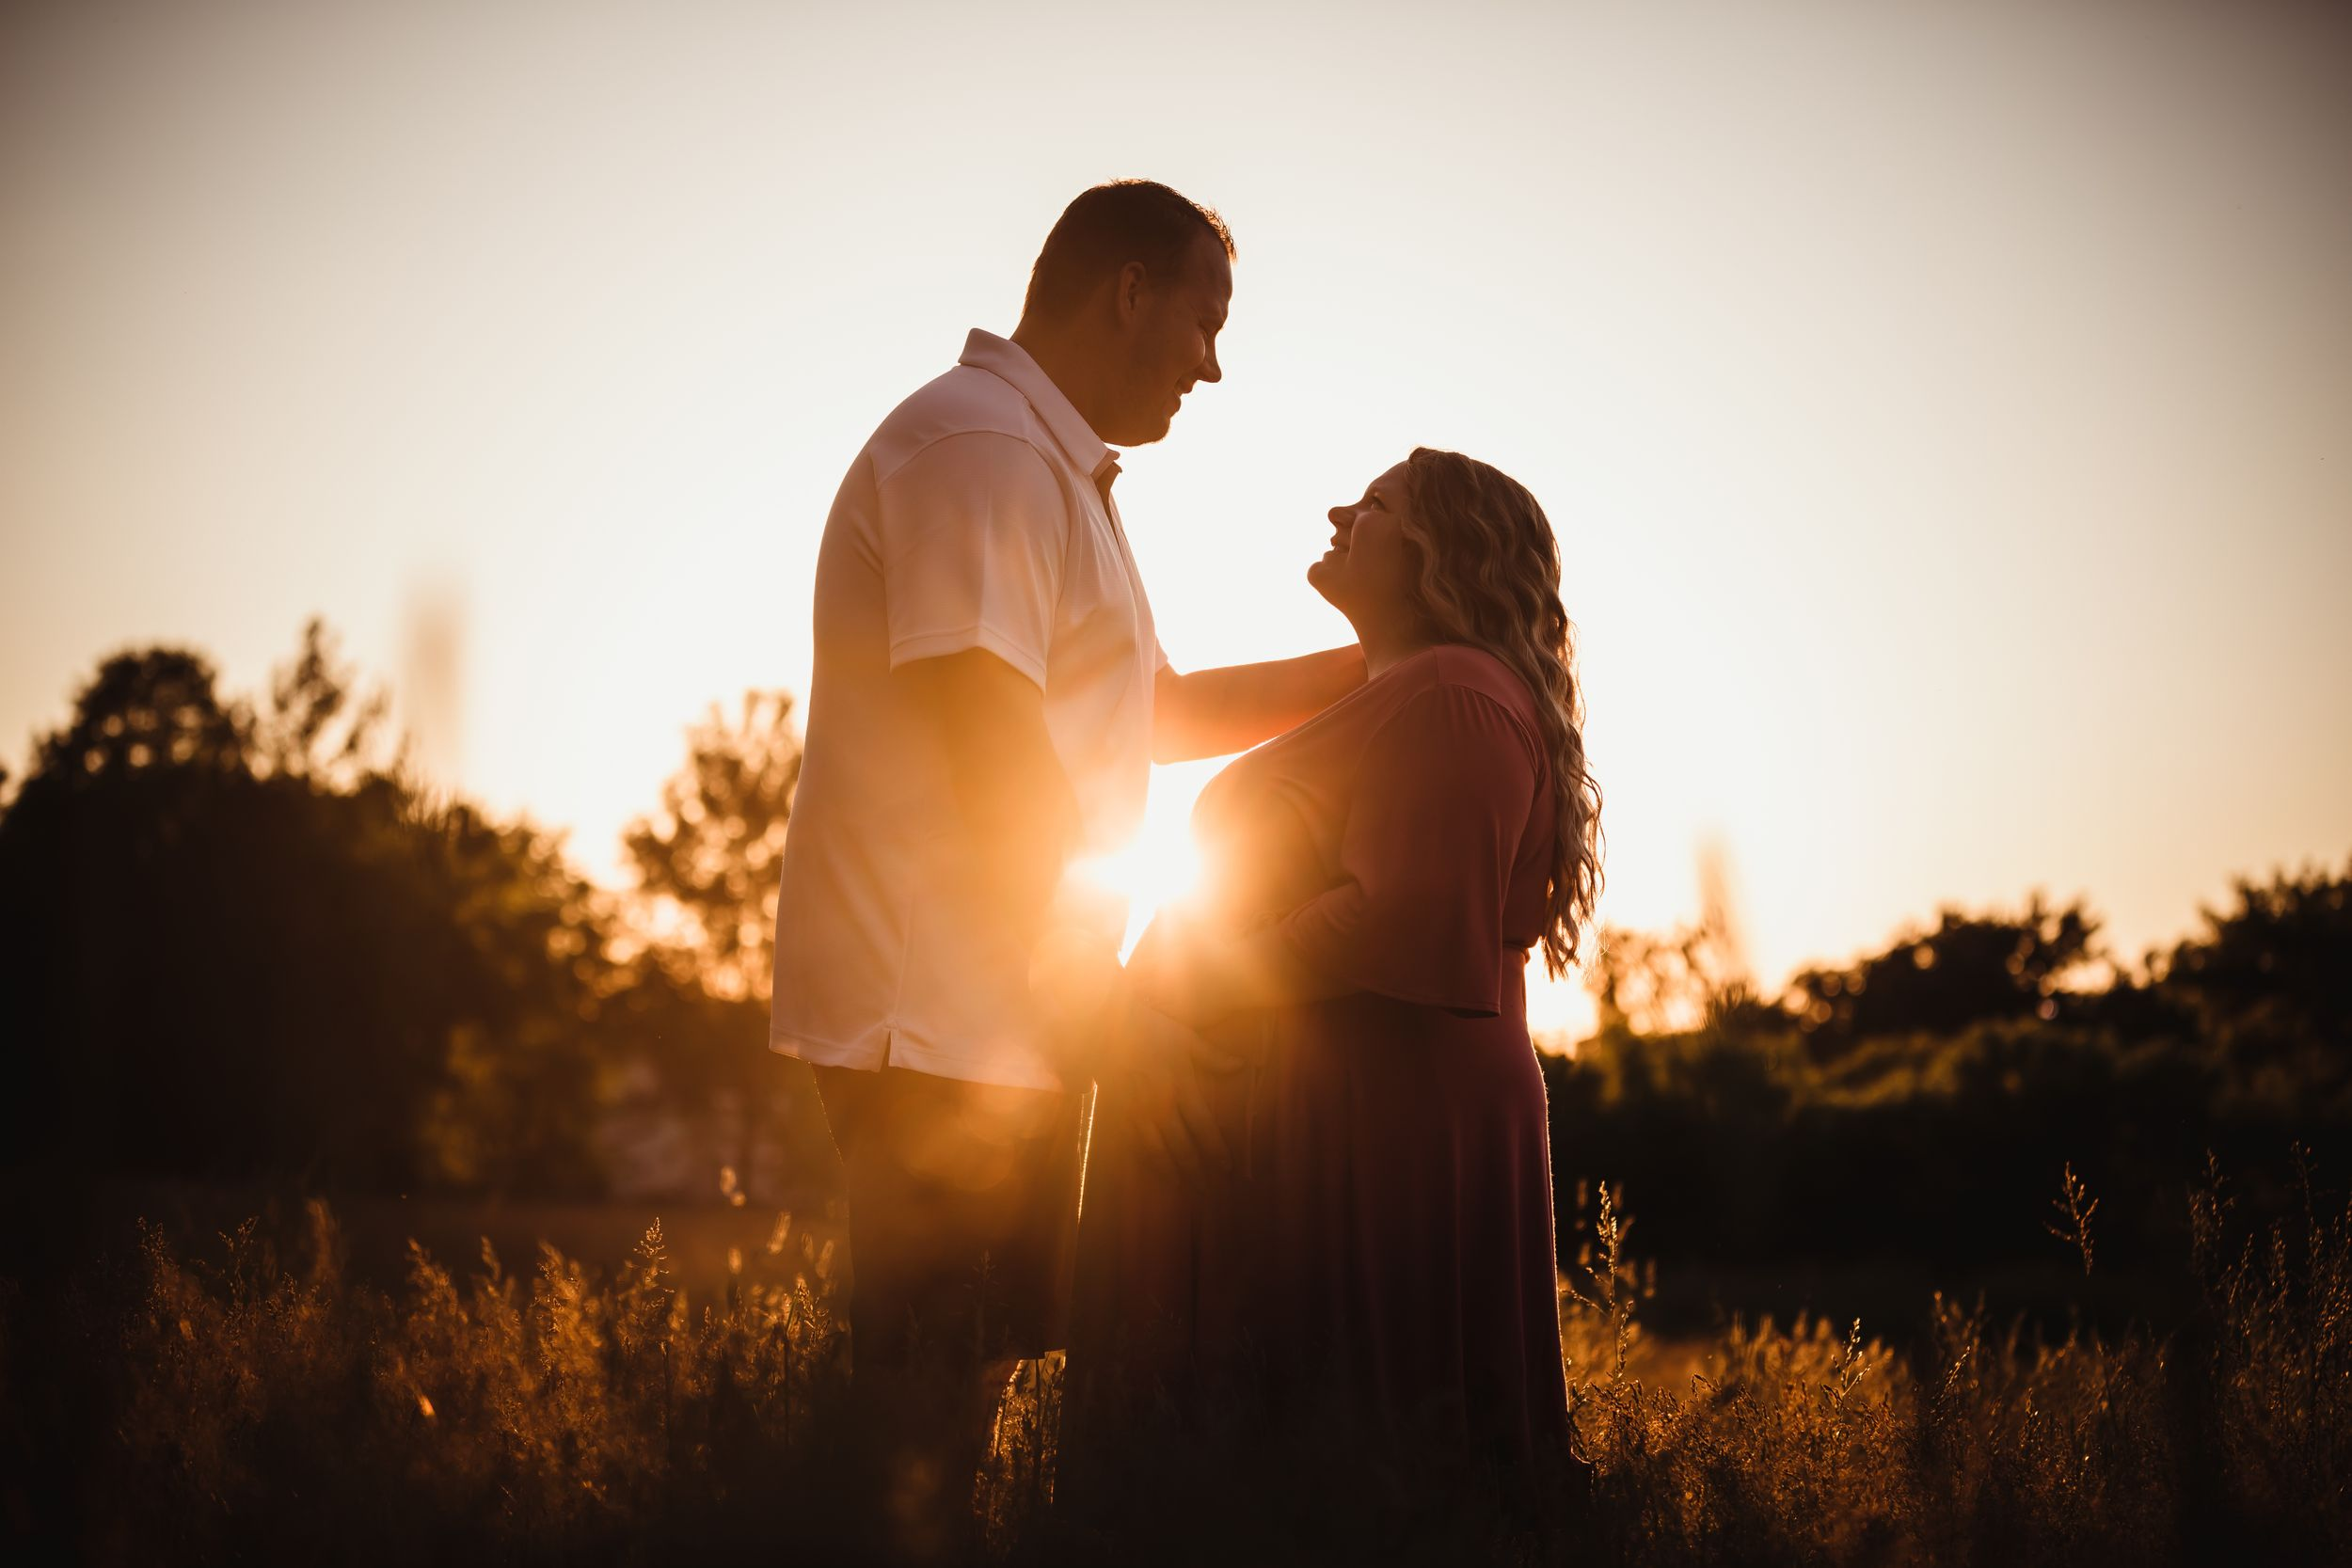 Man and pregnant woman looking at each other smiling in a field at sunset.